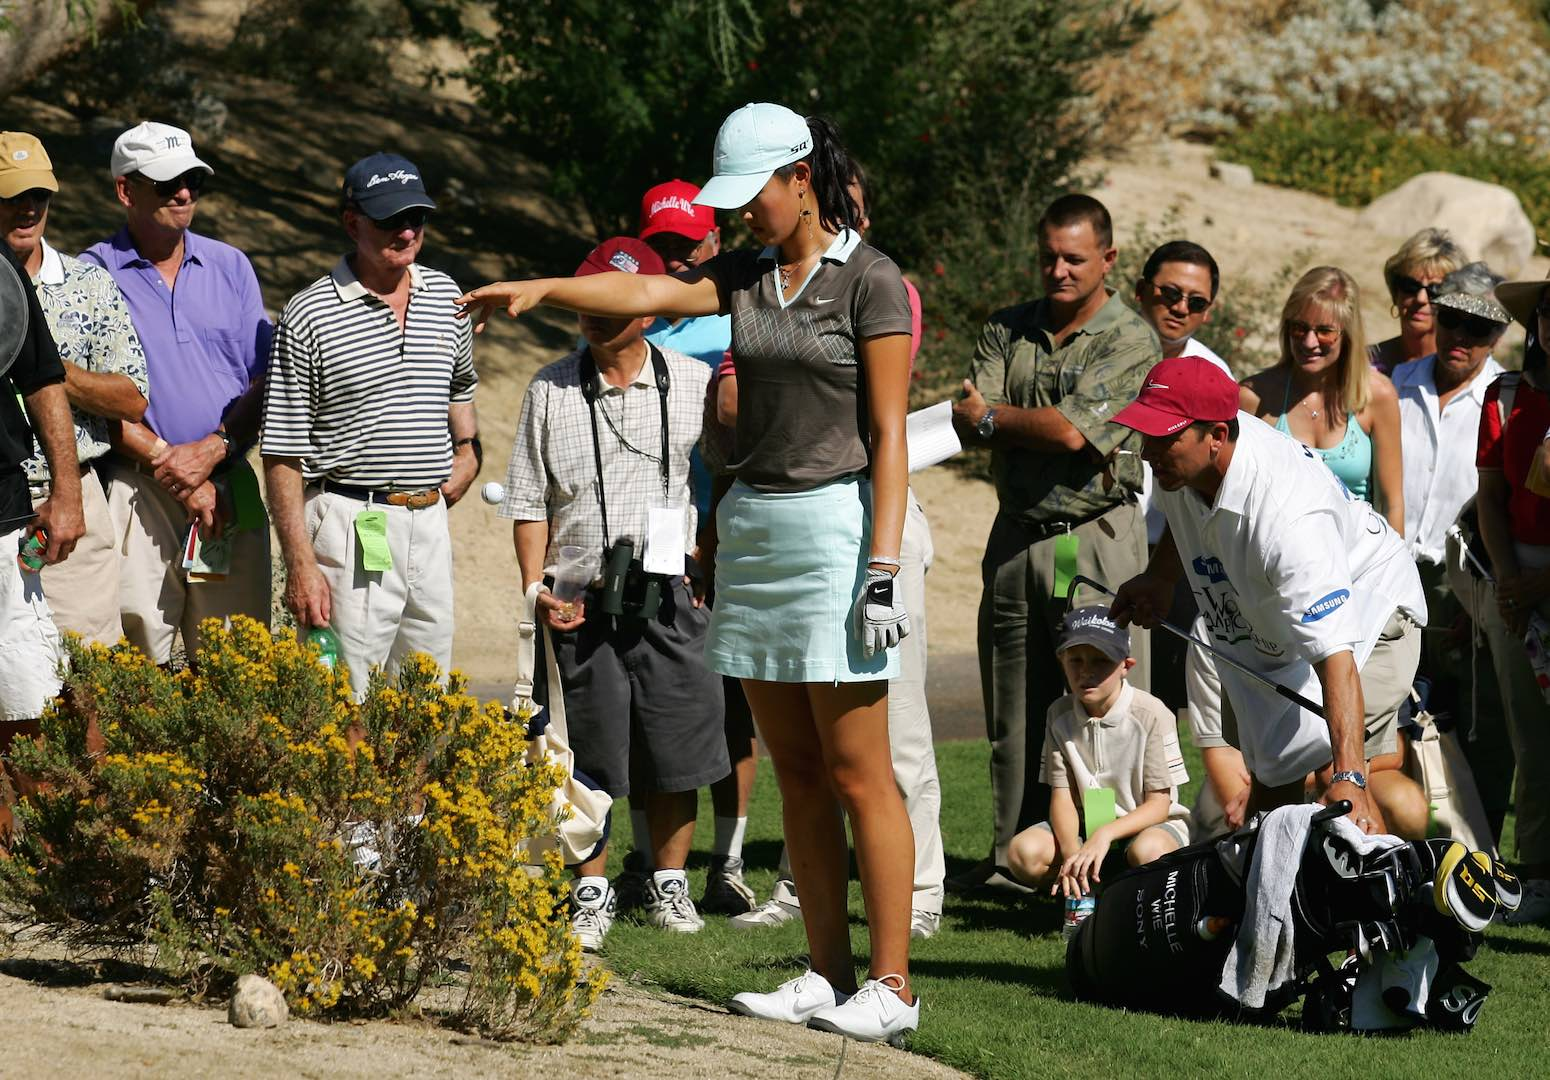 Doris Chen's mother gets her disqualified from LPGA qualifying